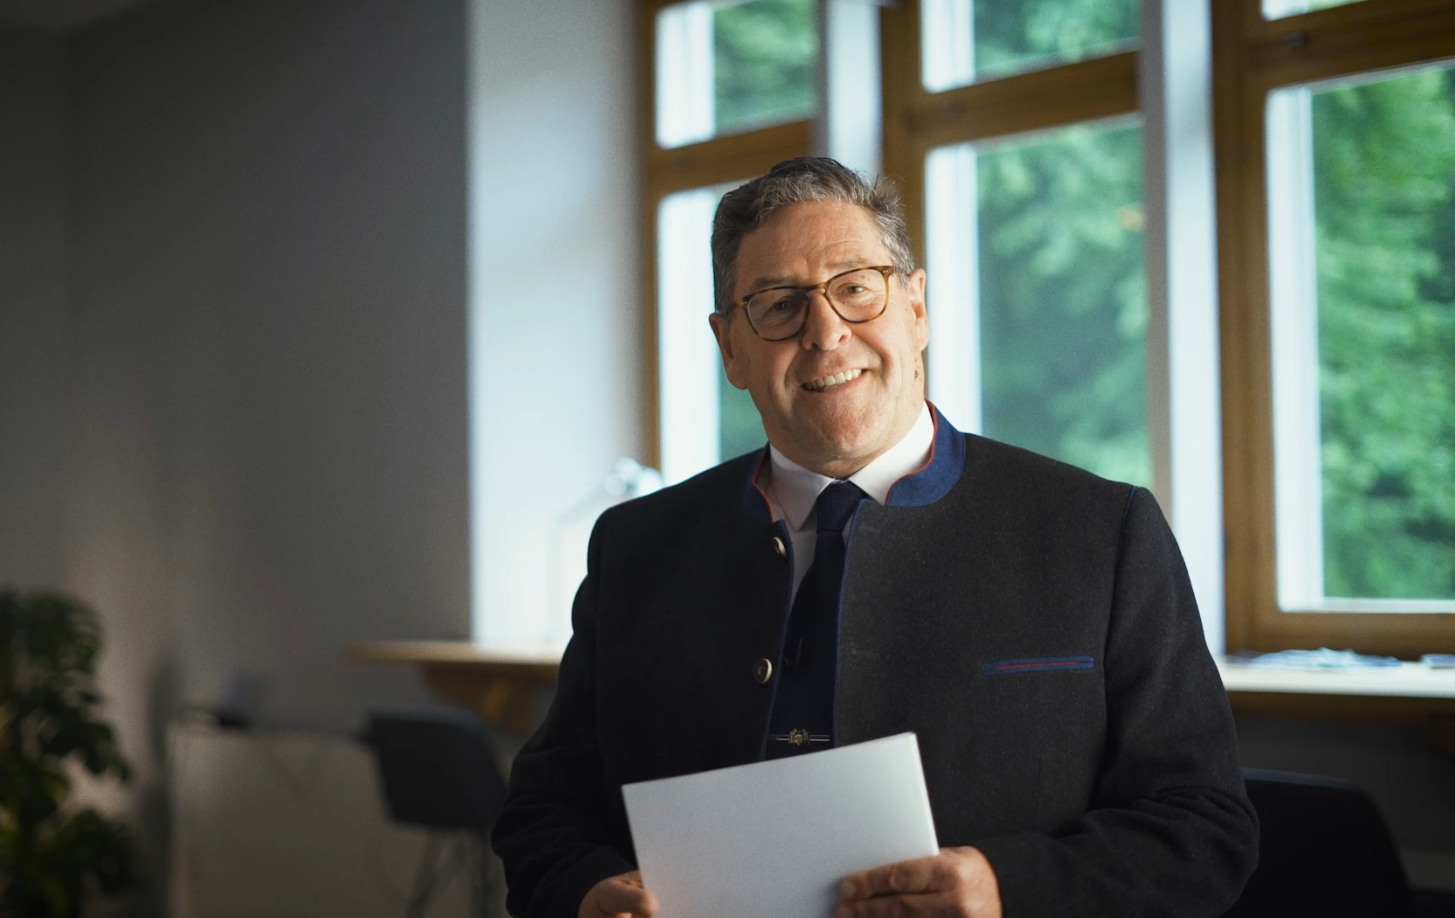 Michael Hartmann, Managing Director EHL SSTH, addresses the question of which learnings educational institutions can draw from the corona crisis